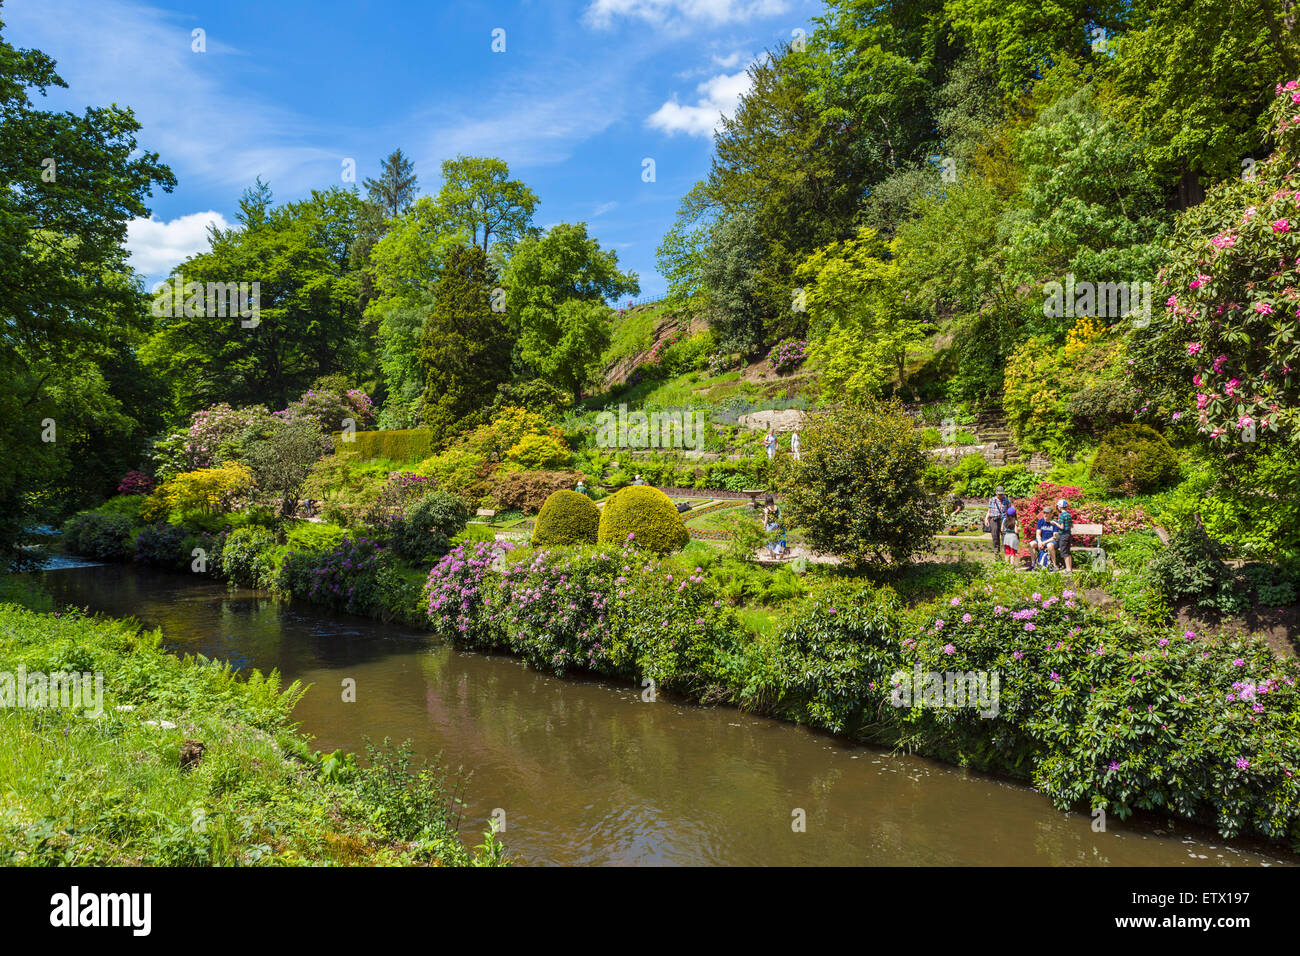 River Bollin in the Gardens at Quarry Bank Mill, a historic 18thC textile mill in Styal, Cheshire, England, UK - Stock Image